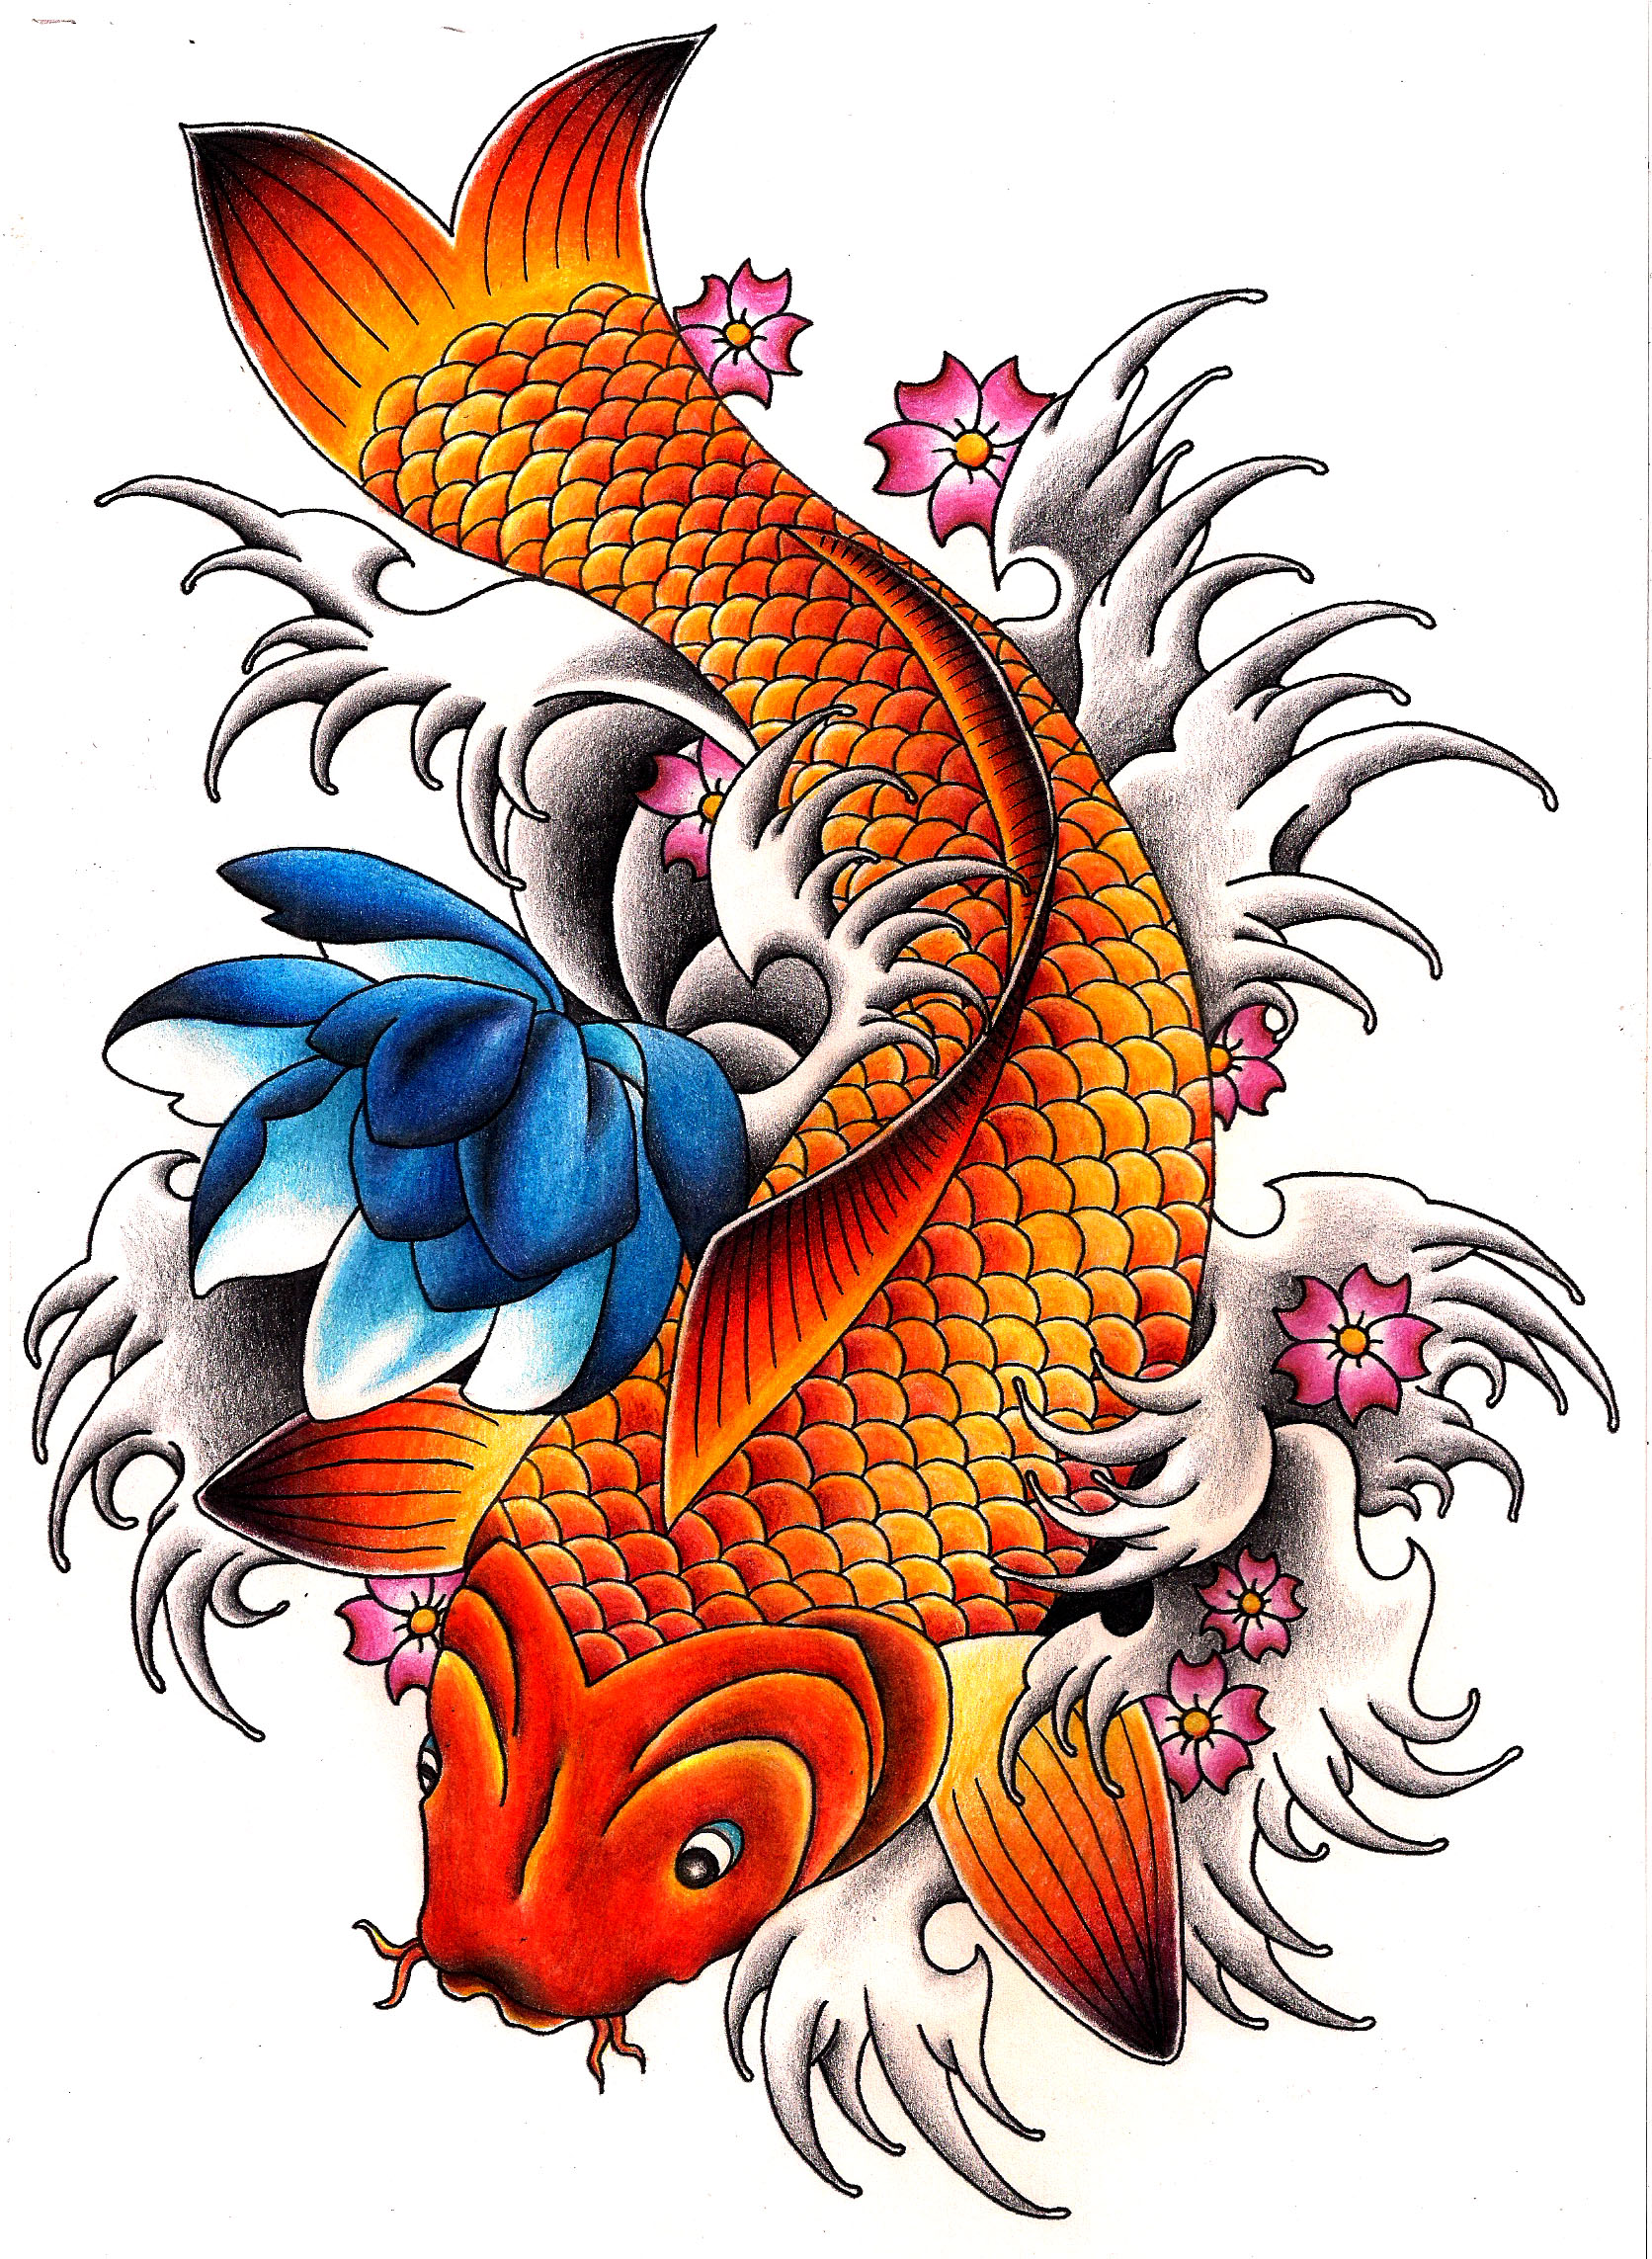 Carp Fish Tattoo Images & Designs